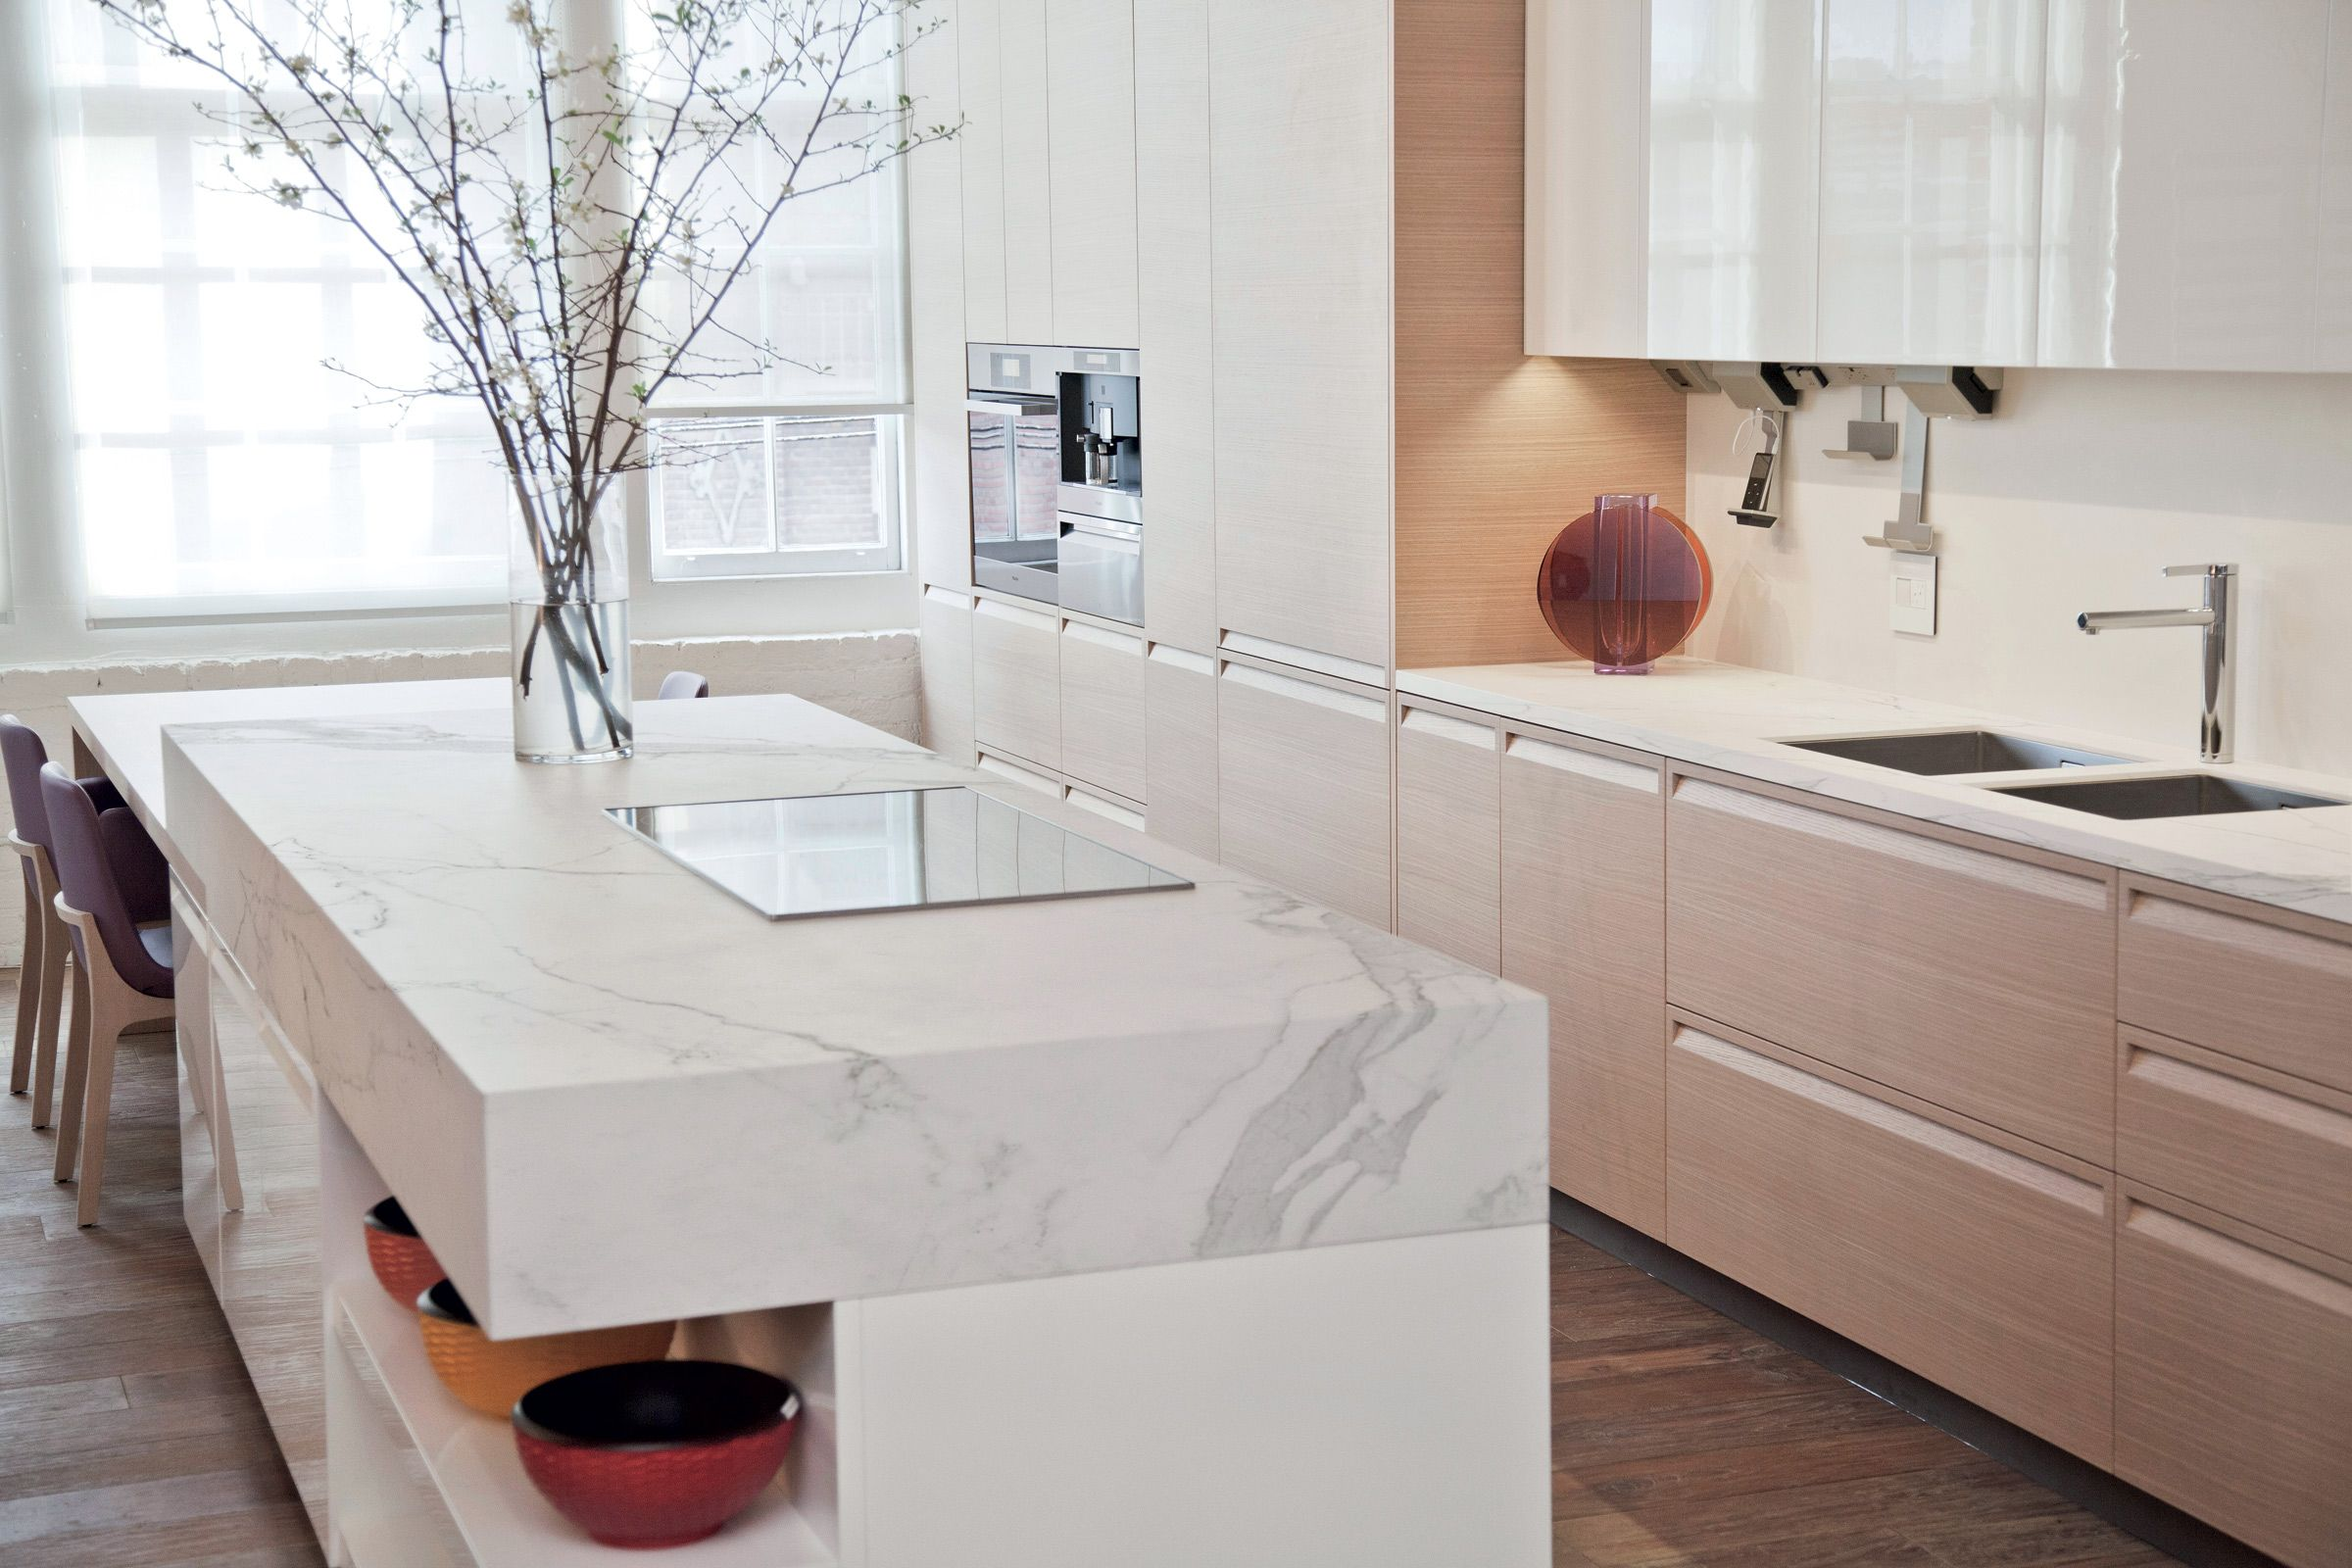 Kitchen Counter Display Estatuario Neolith Countertop Bookmatch Classtone Series Kitchen